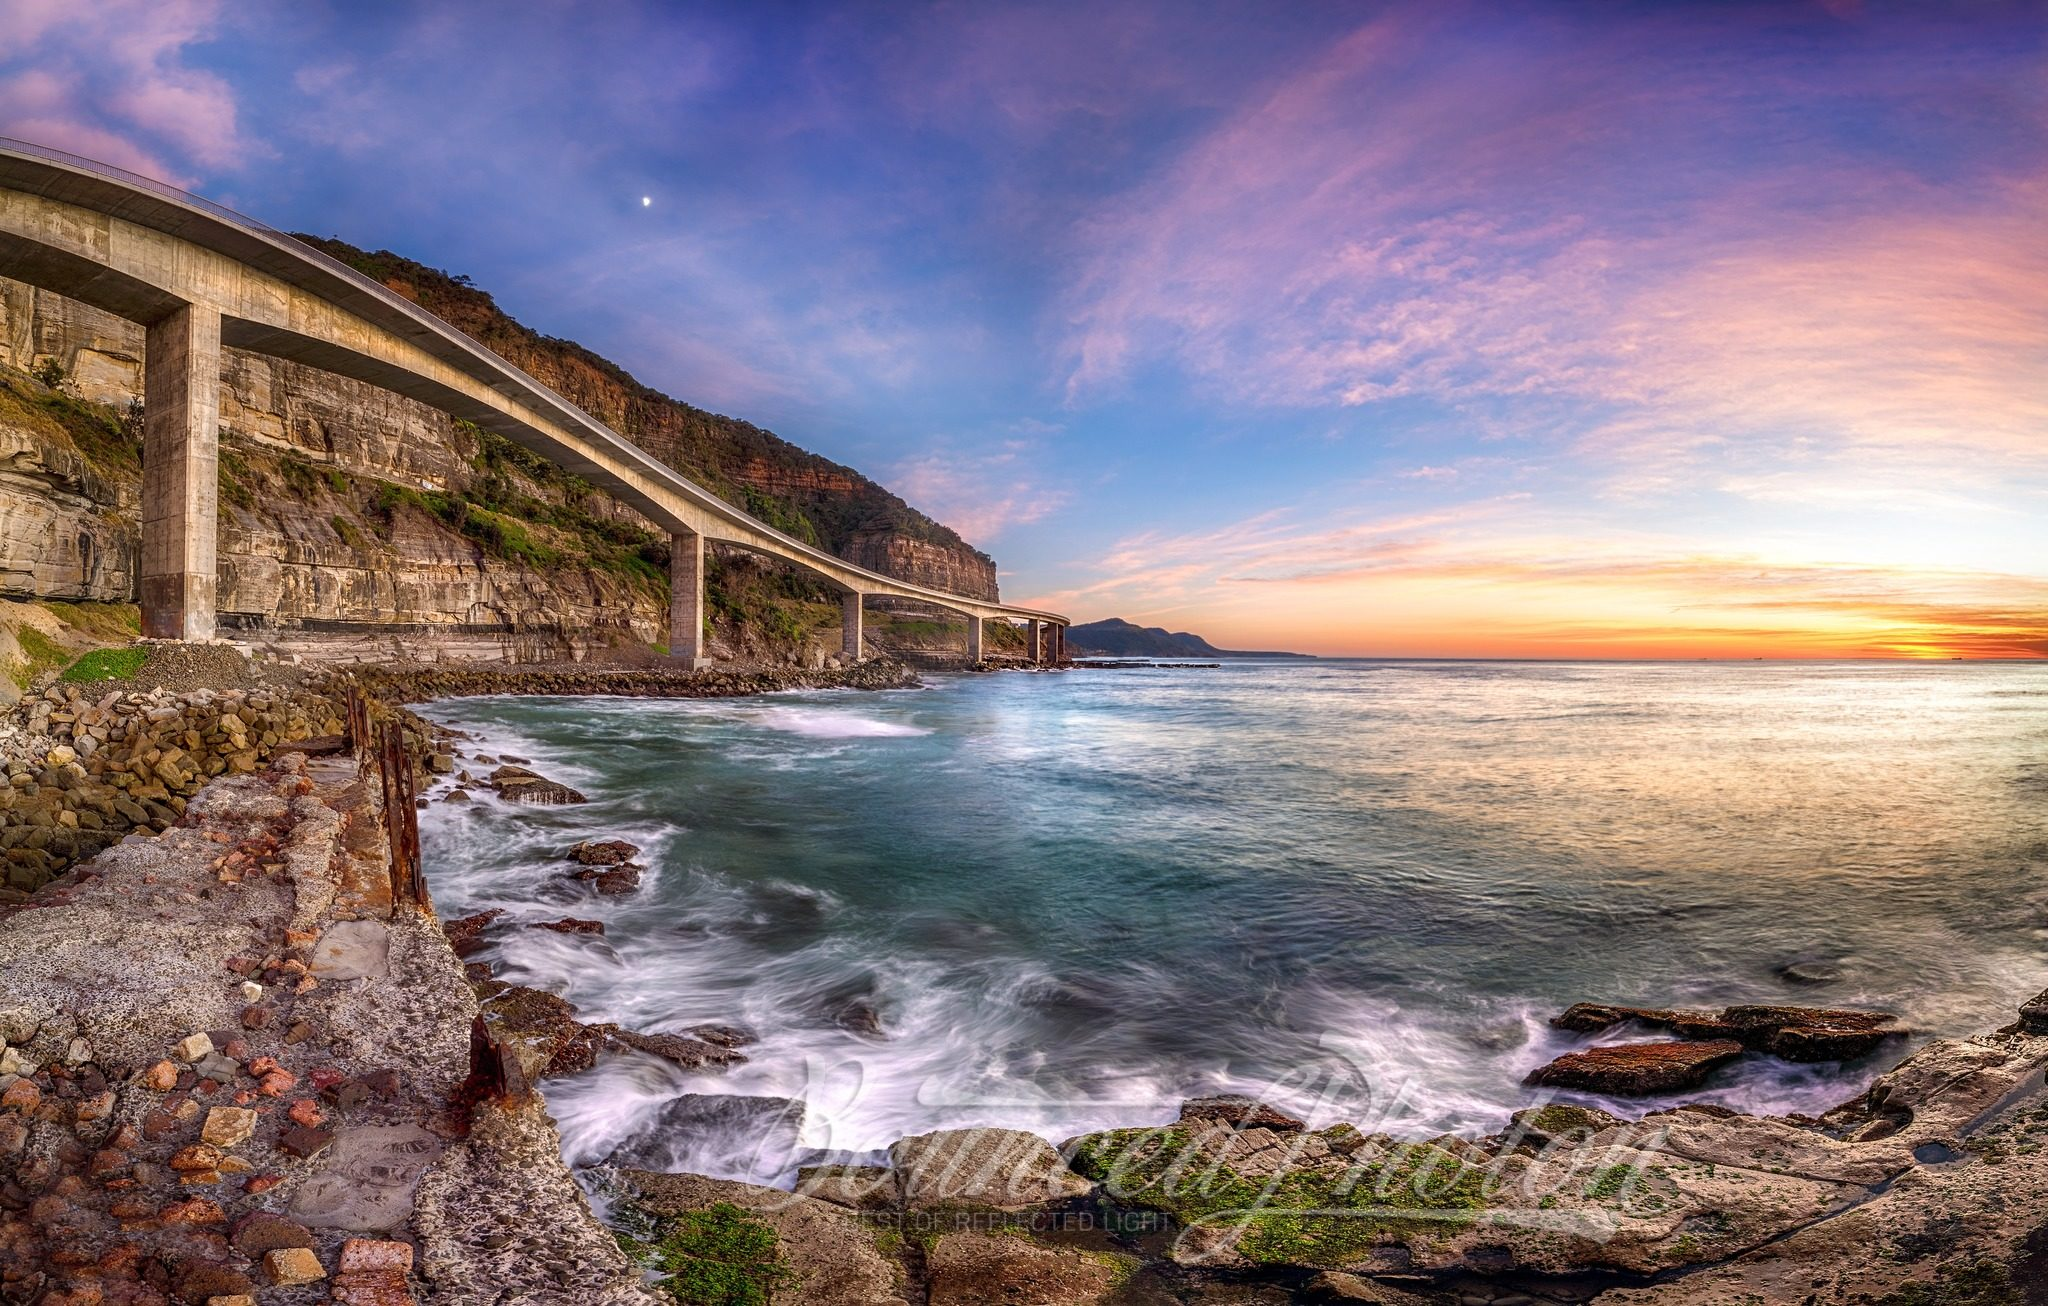 Sea Cliff Bridge, Illawarra, Australia